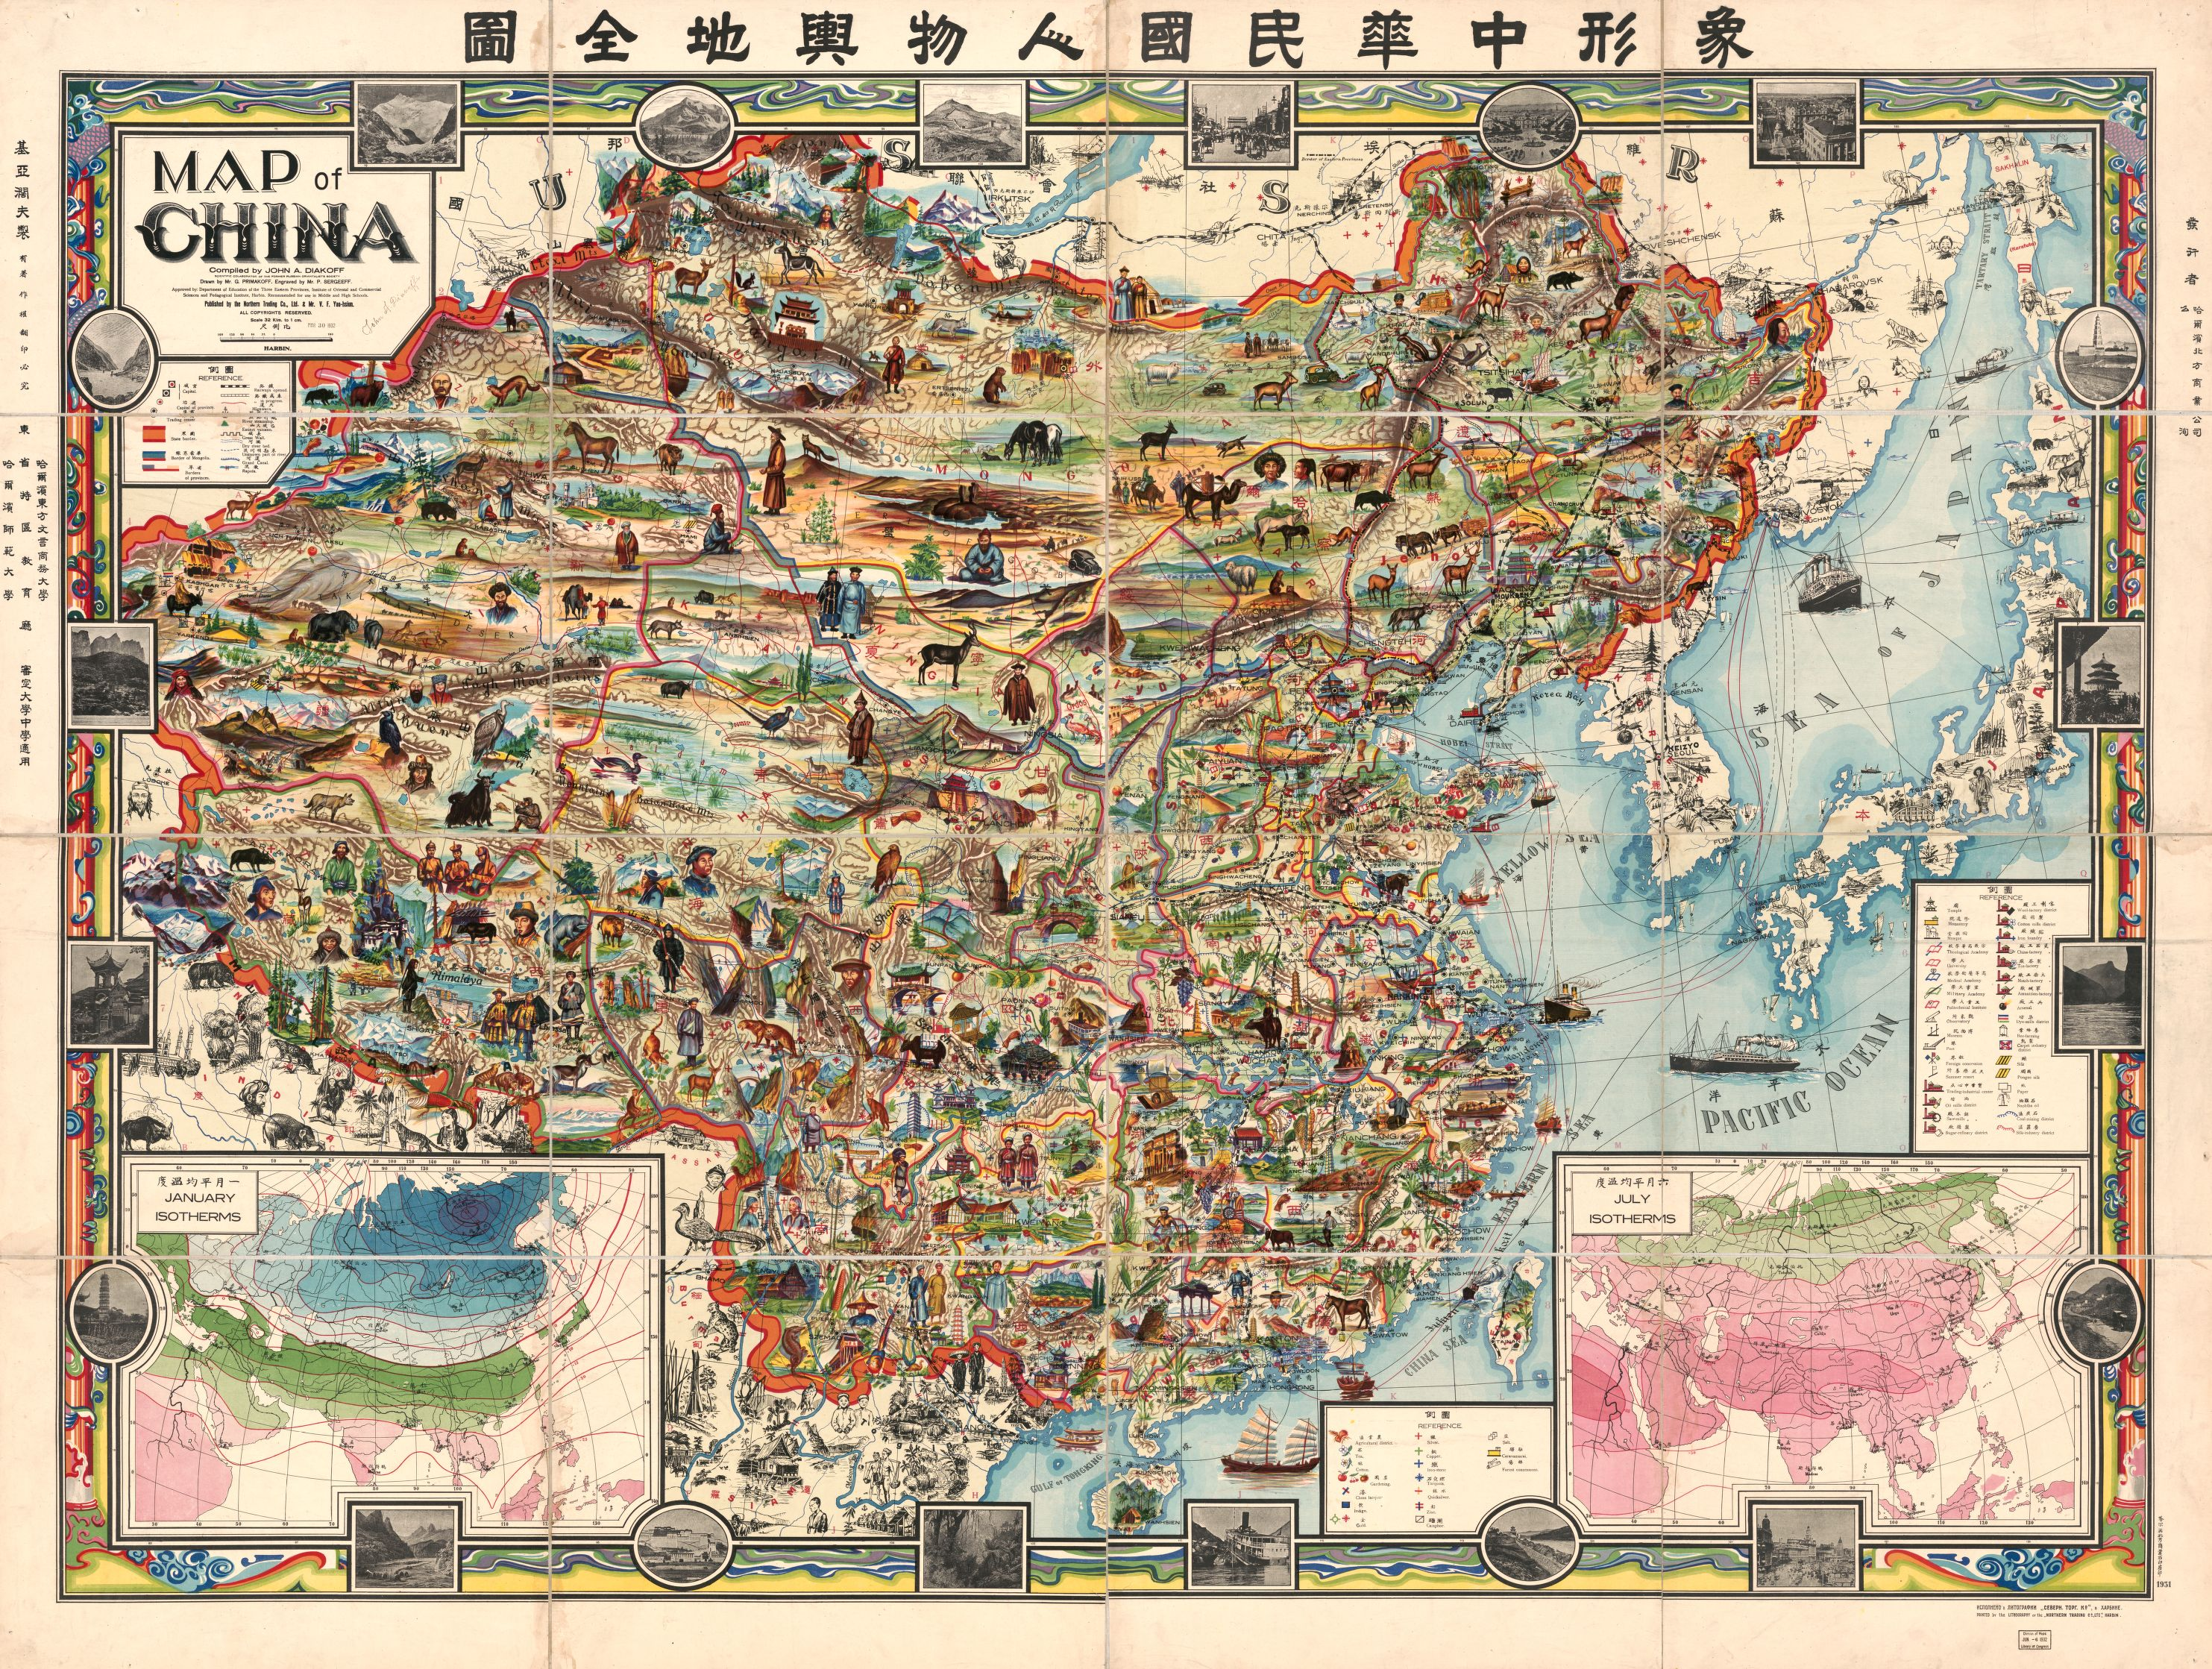 Show Map Of China.Vintage Pictorial Map Of China Earthly Mission